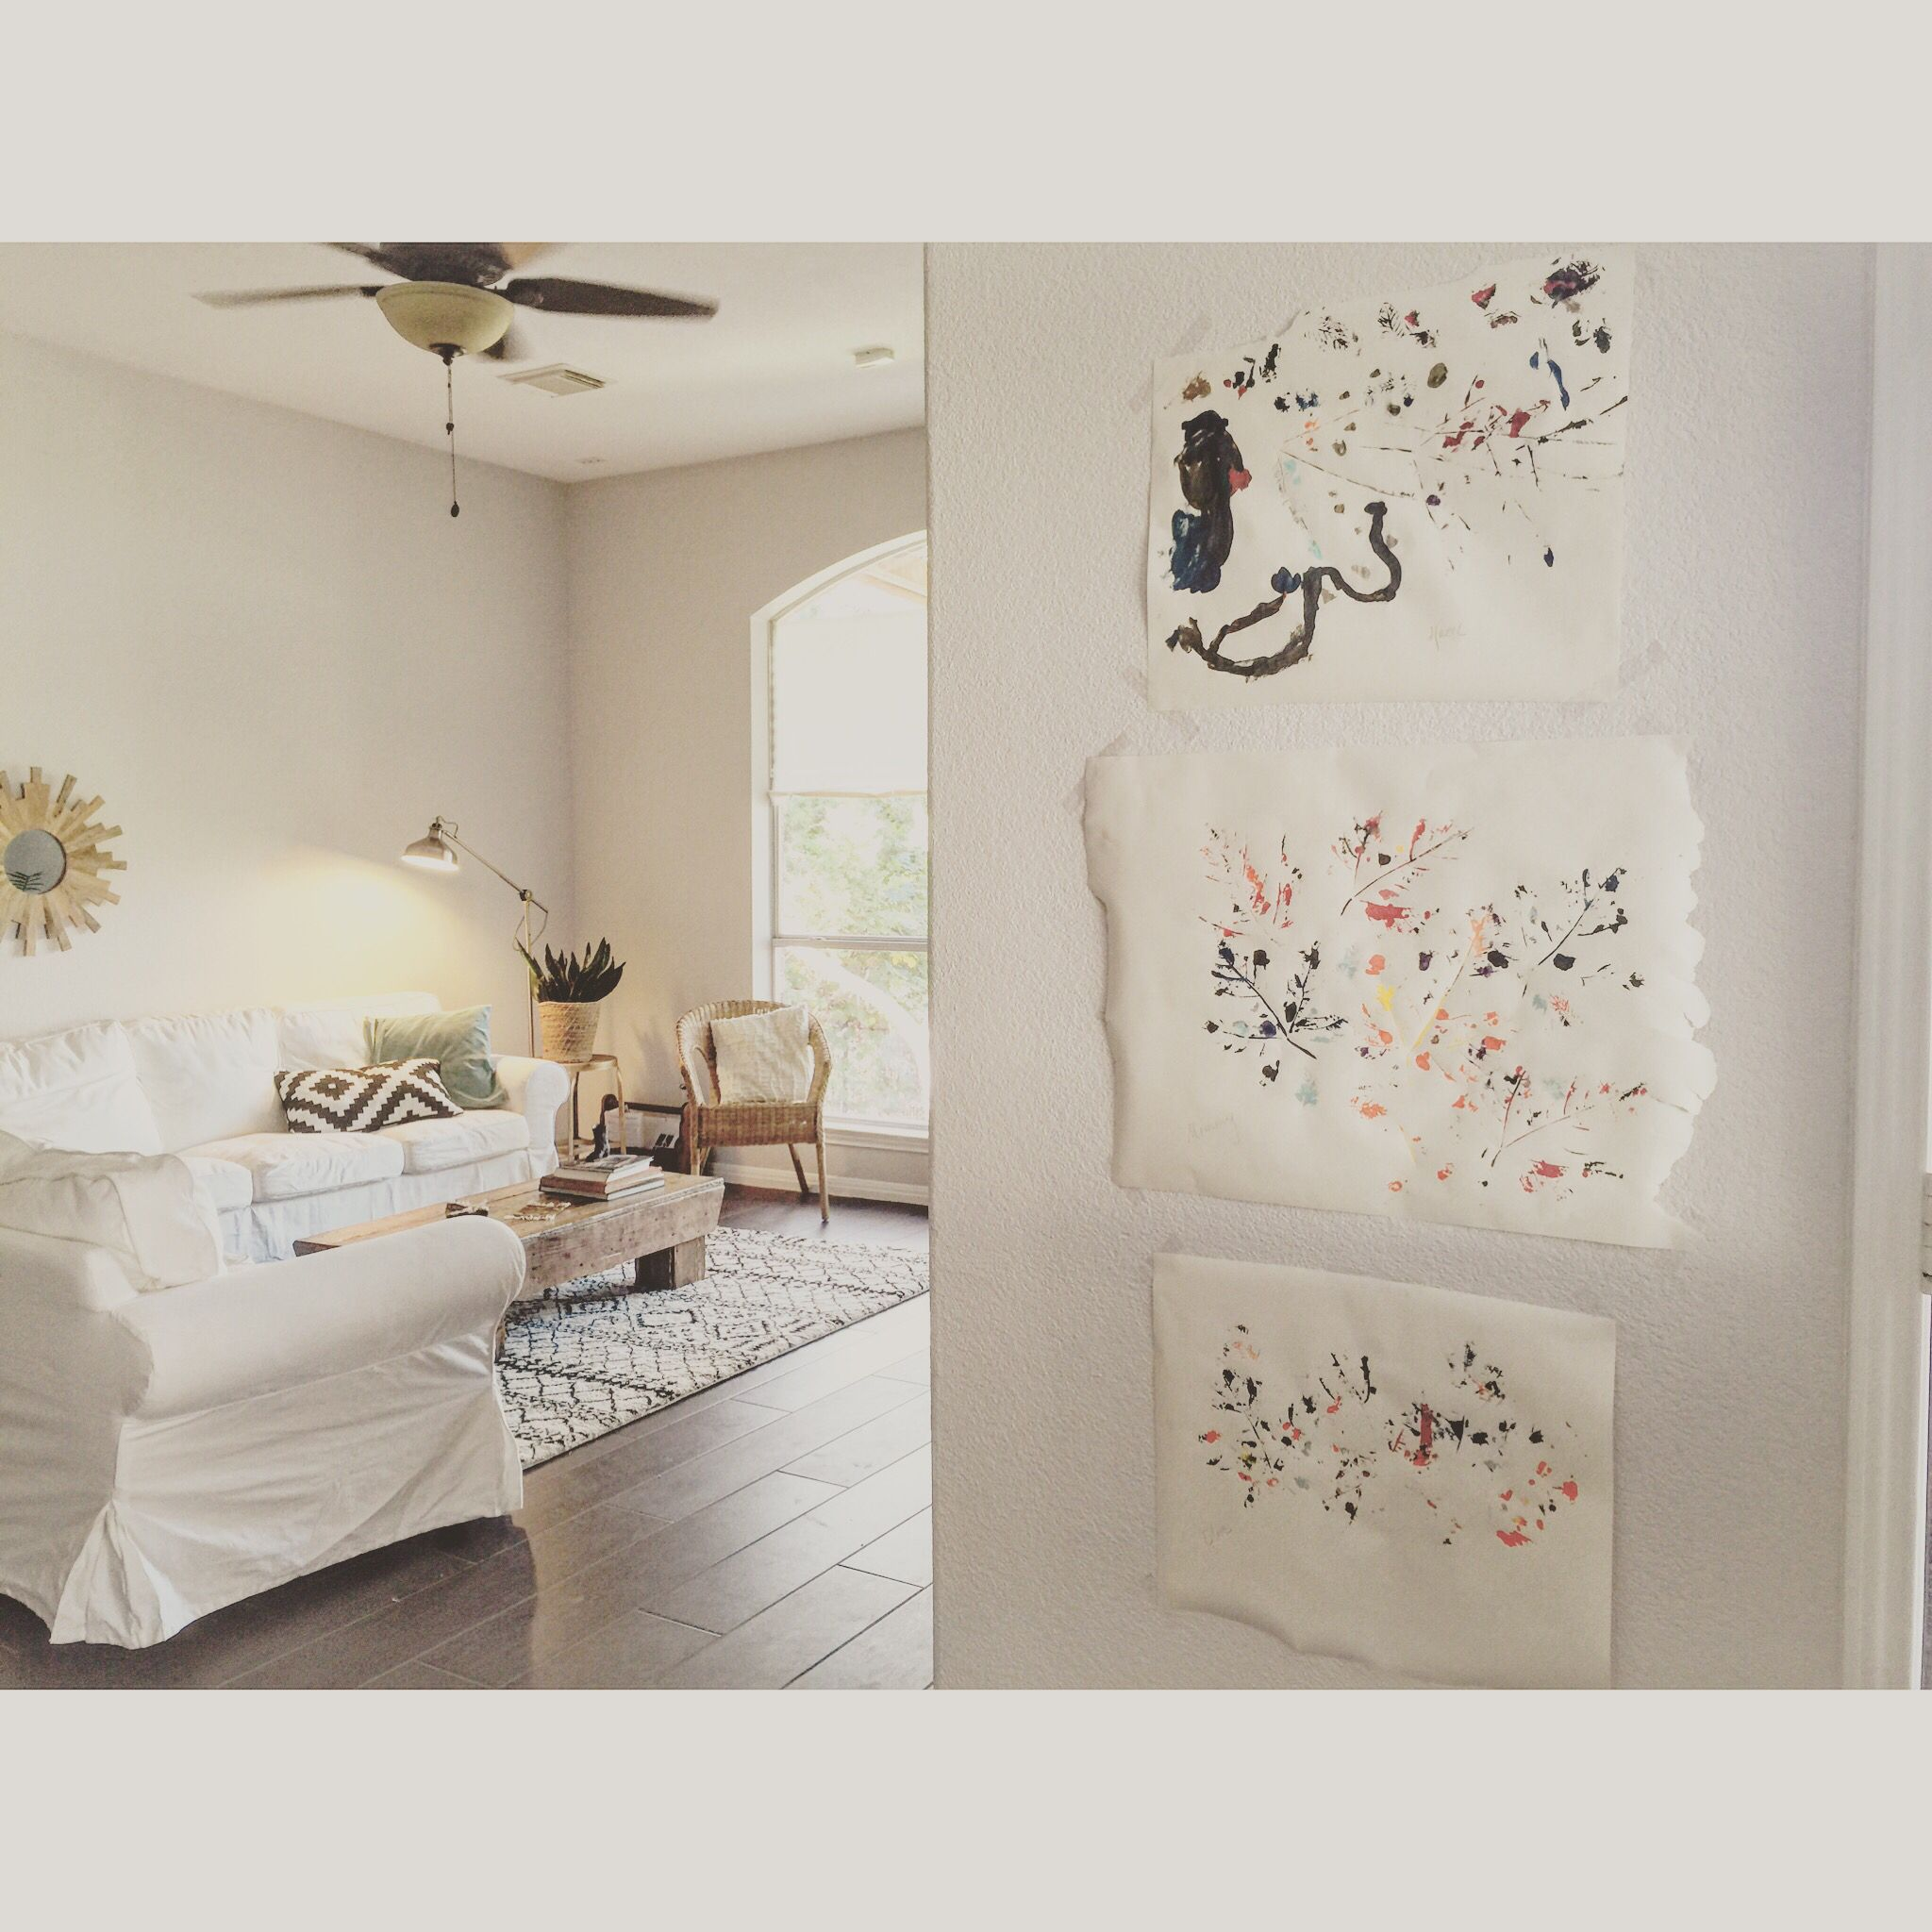 Best Displaying Kids Art Paint And Leaves White Rooms 400 x 300